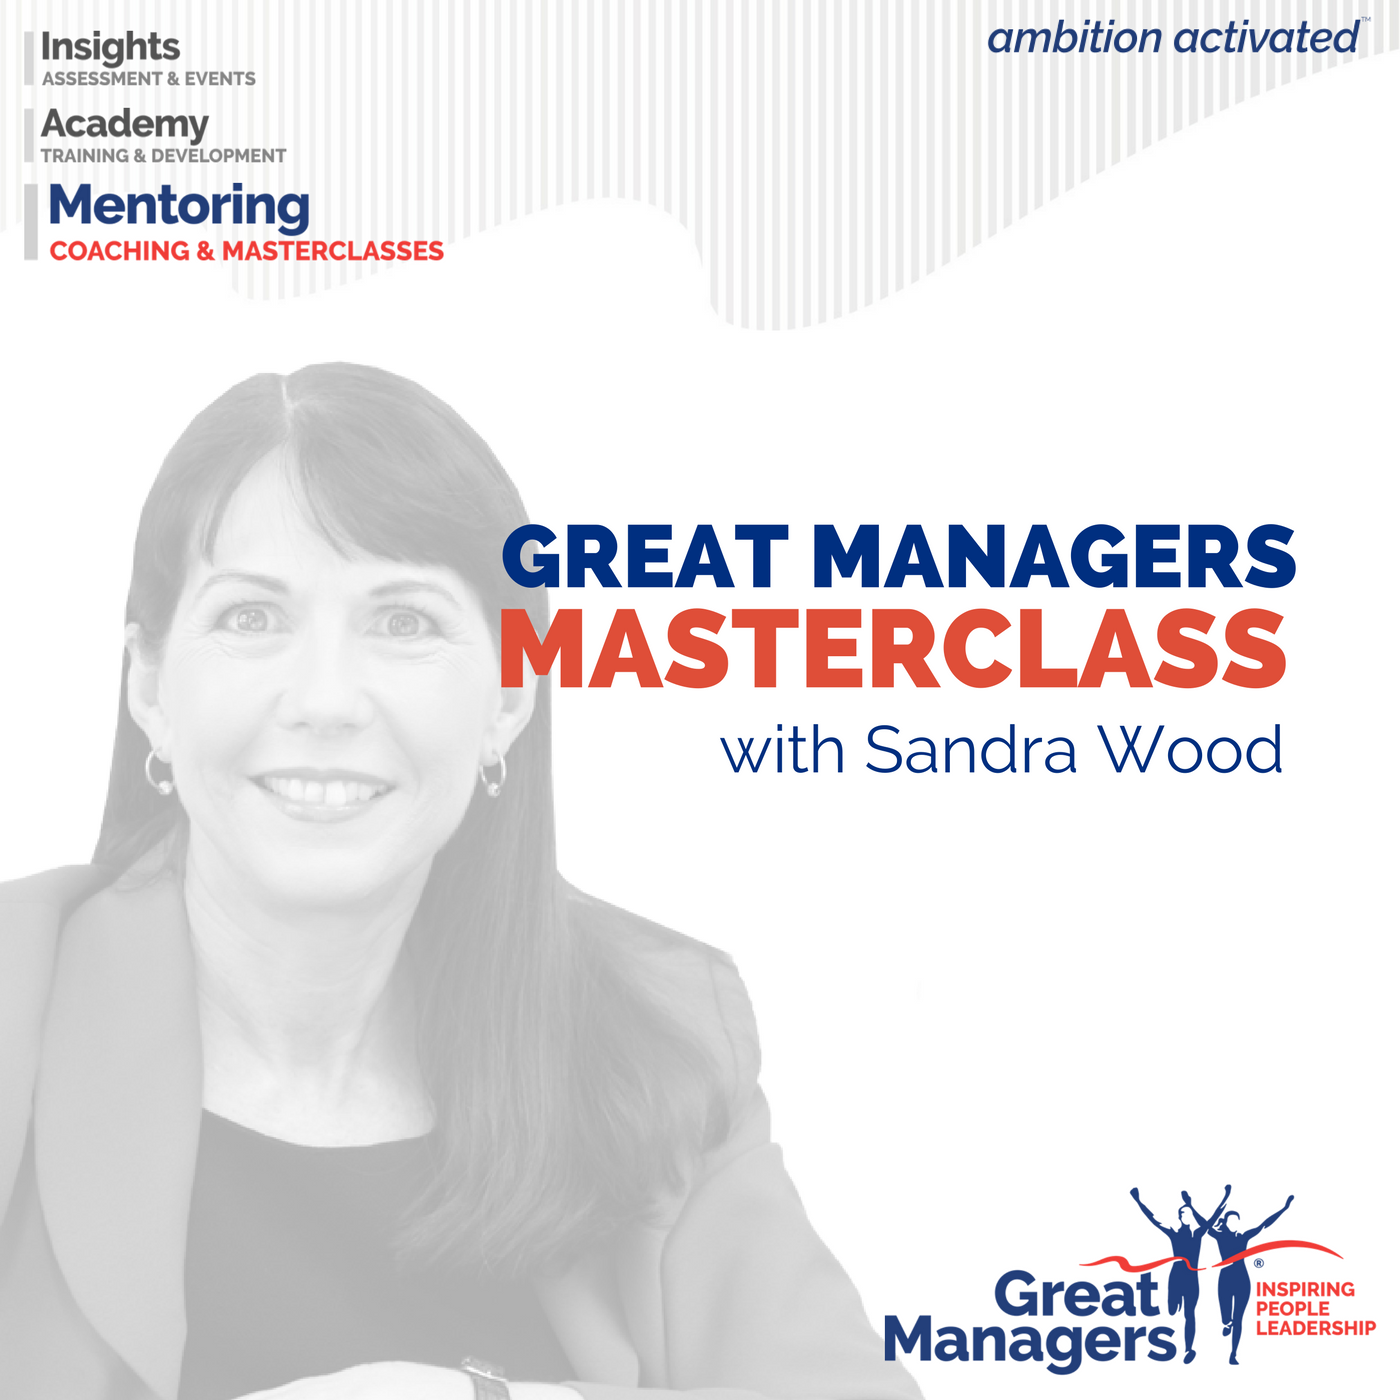 Great Managers® MasterClass with Sandra Wood